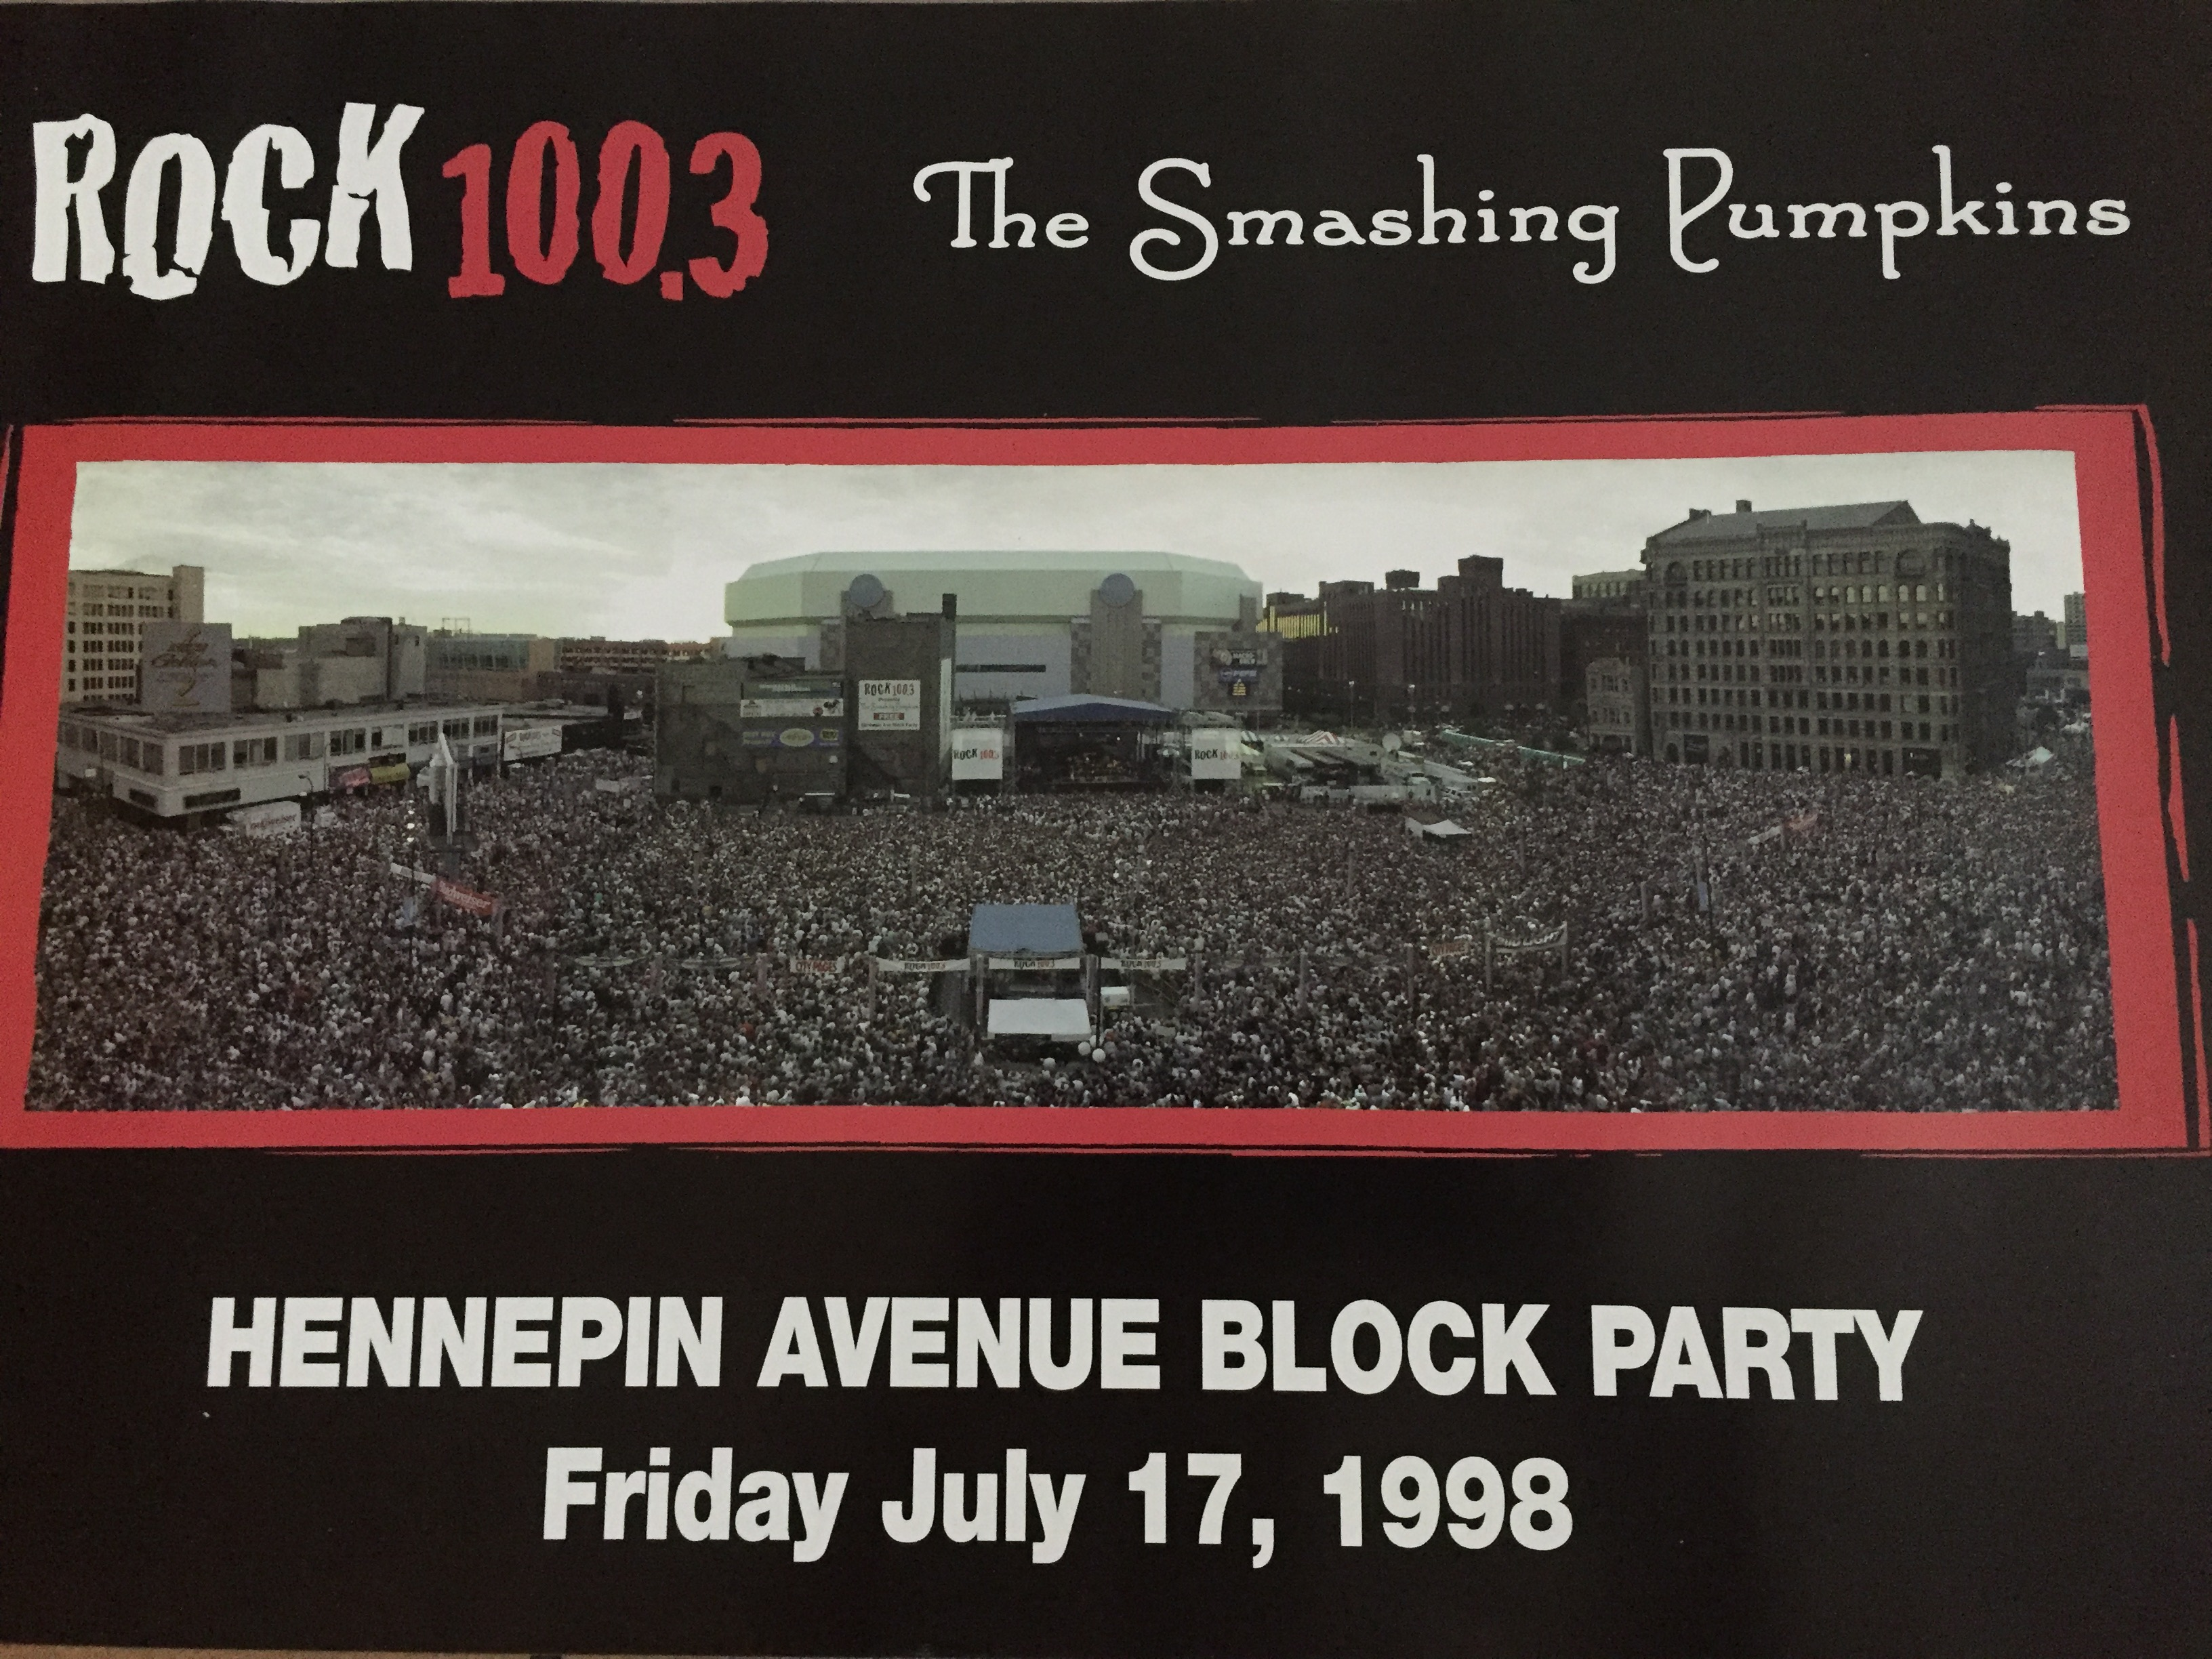 Rock 100.3 flyer for The Smashing Pumpkins, July 17, 1998